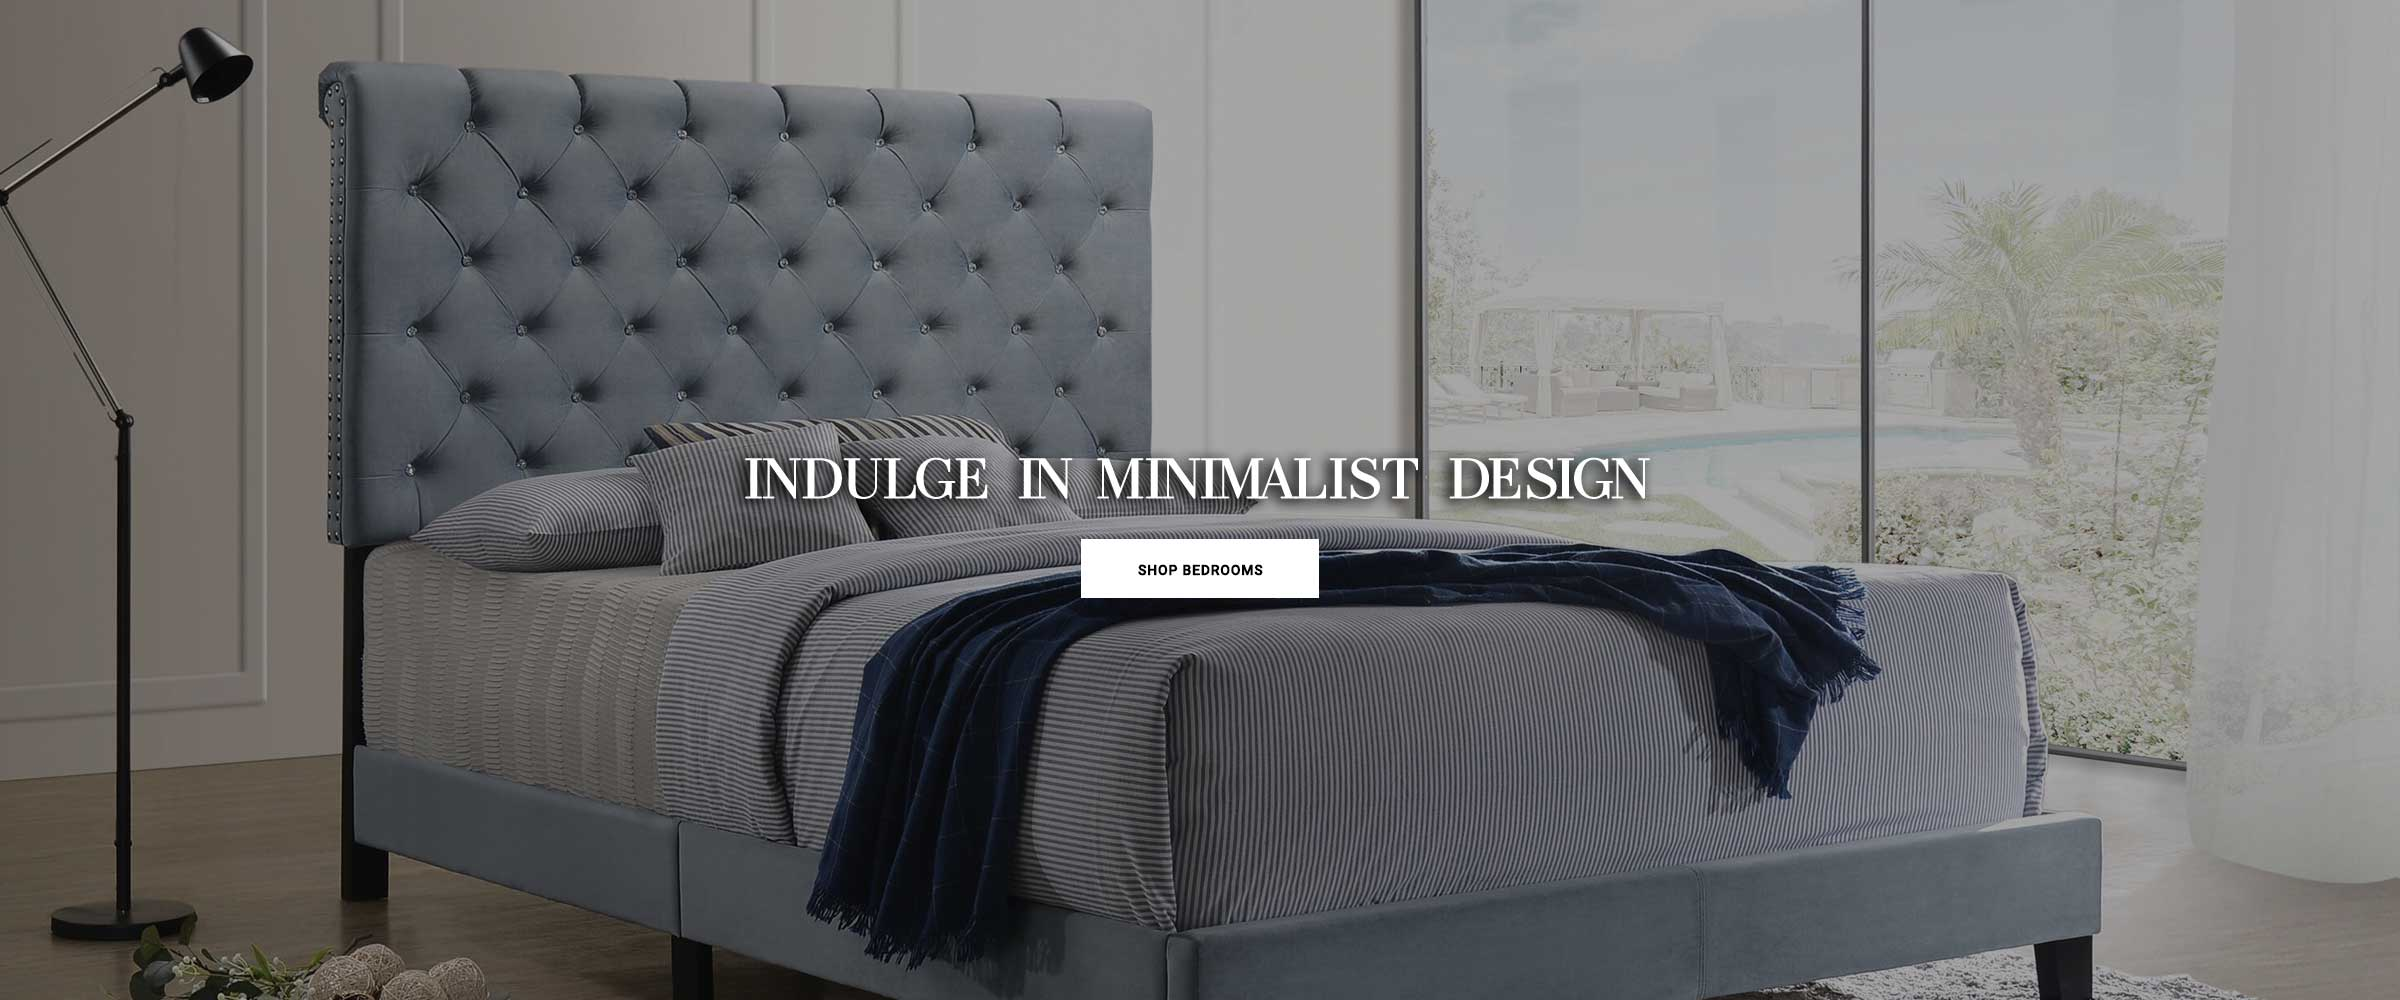 Homepage-Banners_Bedroom